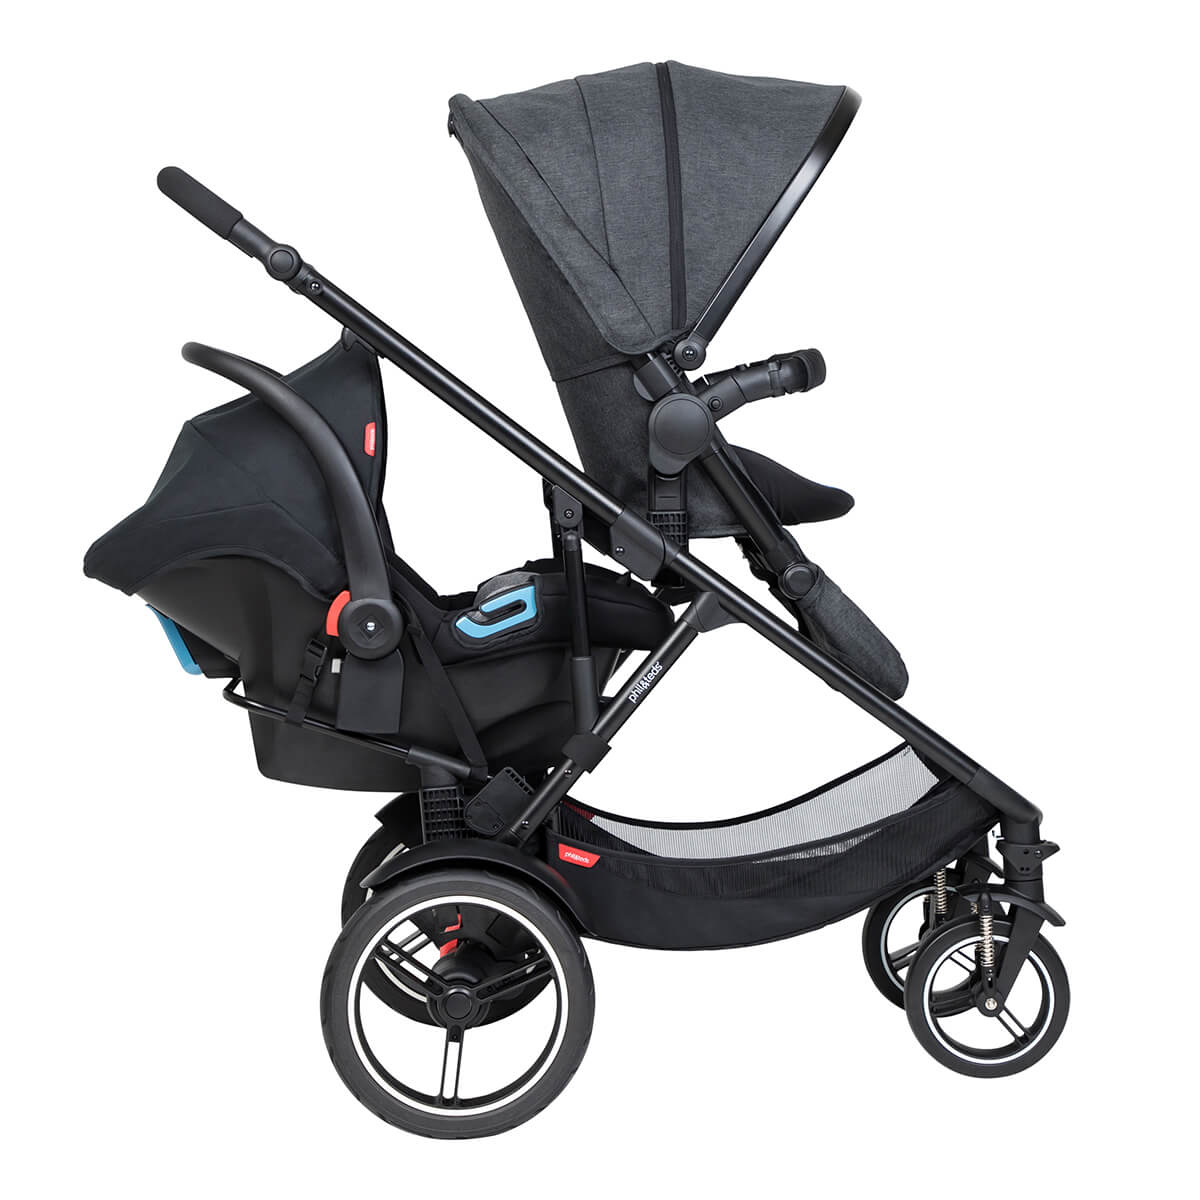 https://cdn.accentuate.io/4509867311201/19793939726506/philteds-voyager-buggy-in-forward-facing-mode-with-travel-system-in-the-rear-v1626485387816.jpg?1200x1200